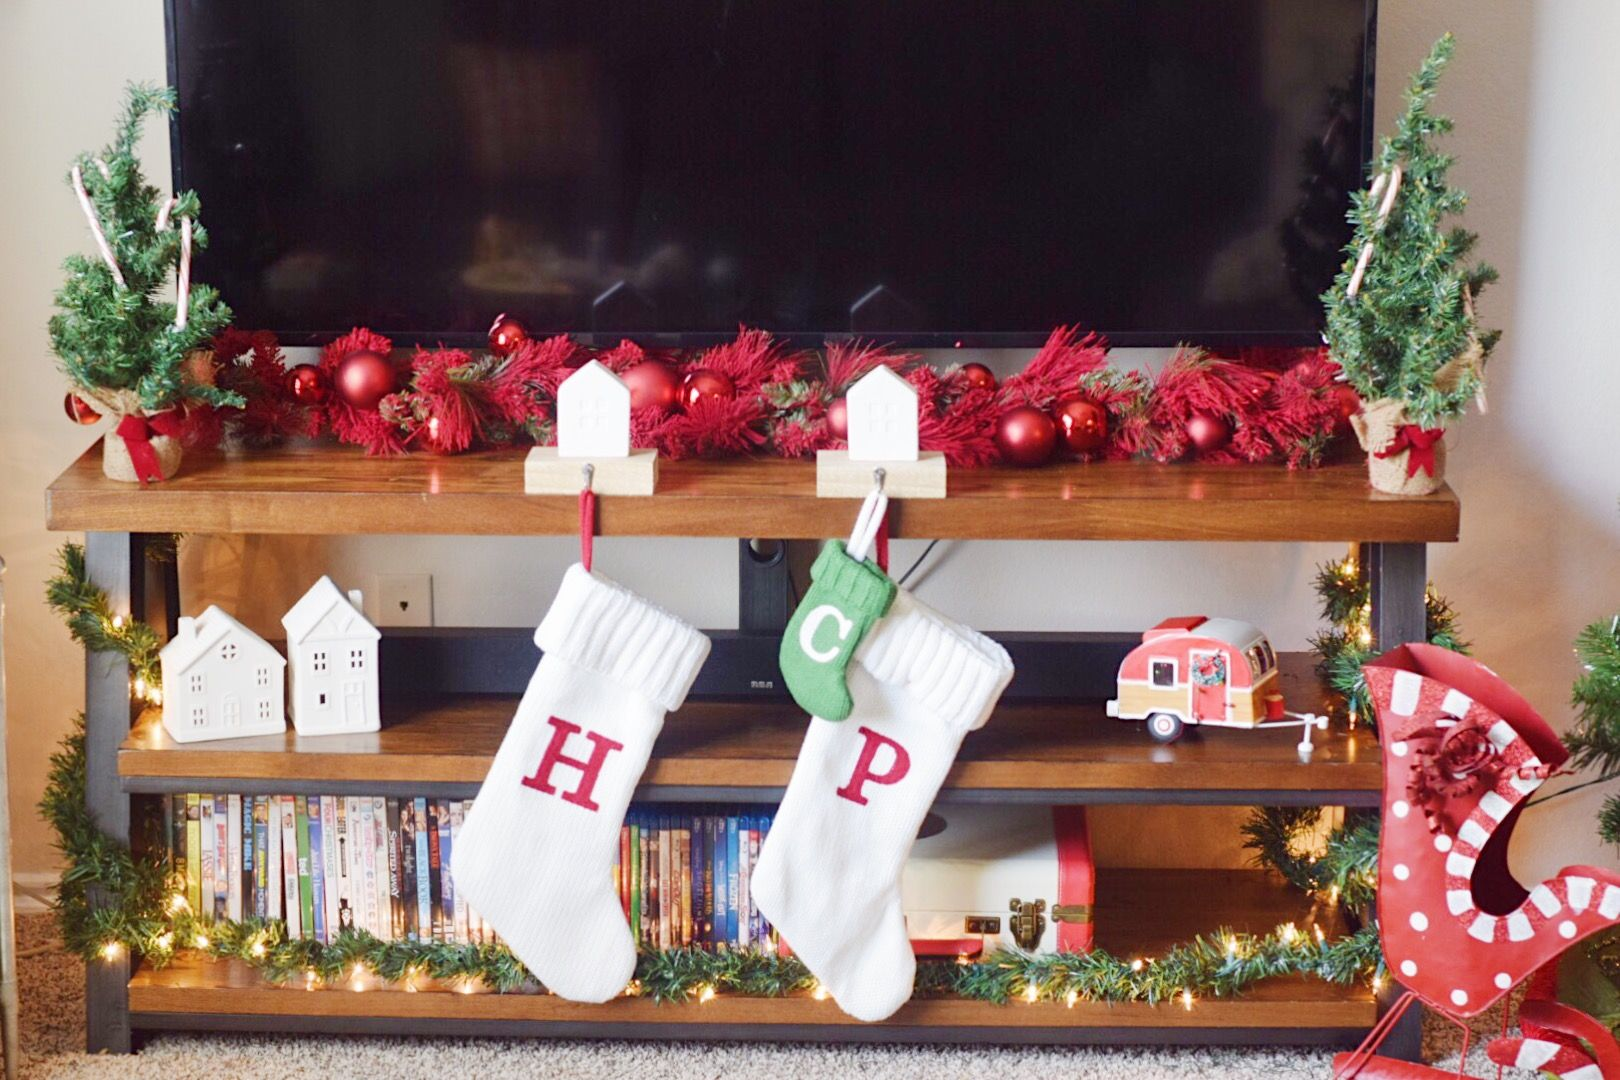 Christmas decorations on the TV stand